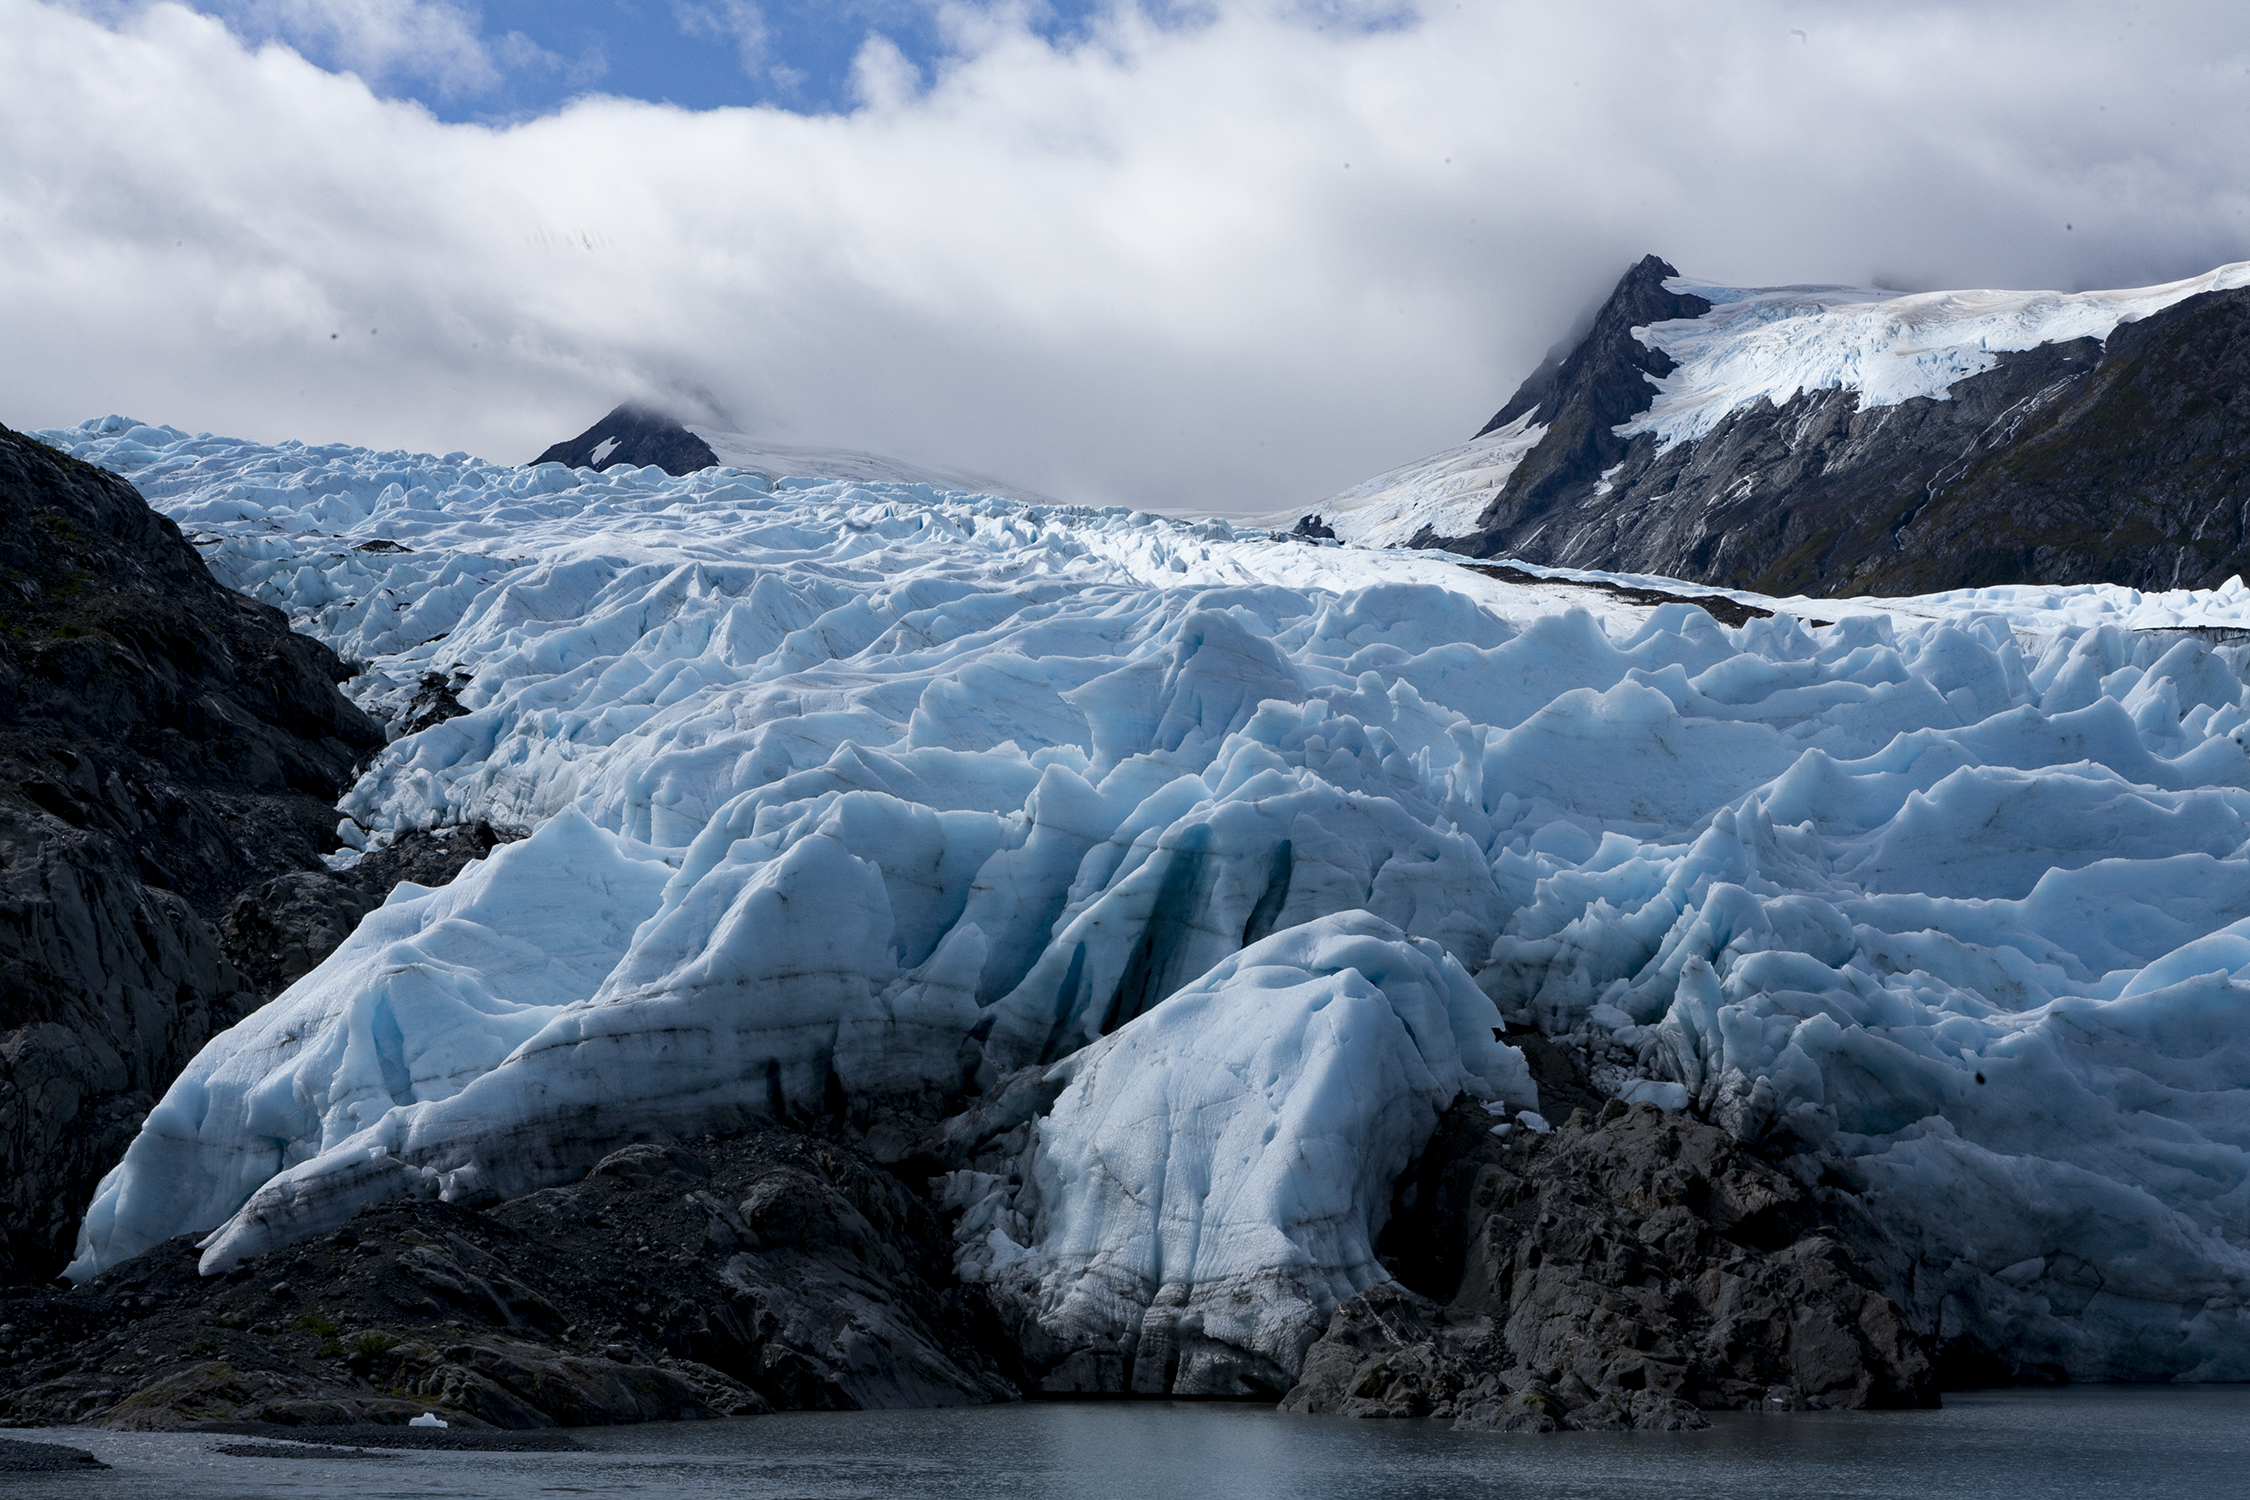 Portage Glacier has advanced and retreated over the years, due to climatic fluctuations. Moraines or large piles of rock and debris are deposited by glaciers as they flow down, or retreat from valleys. © Photo by Gail Fisher